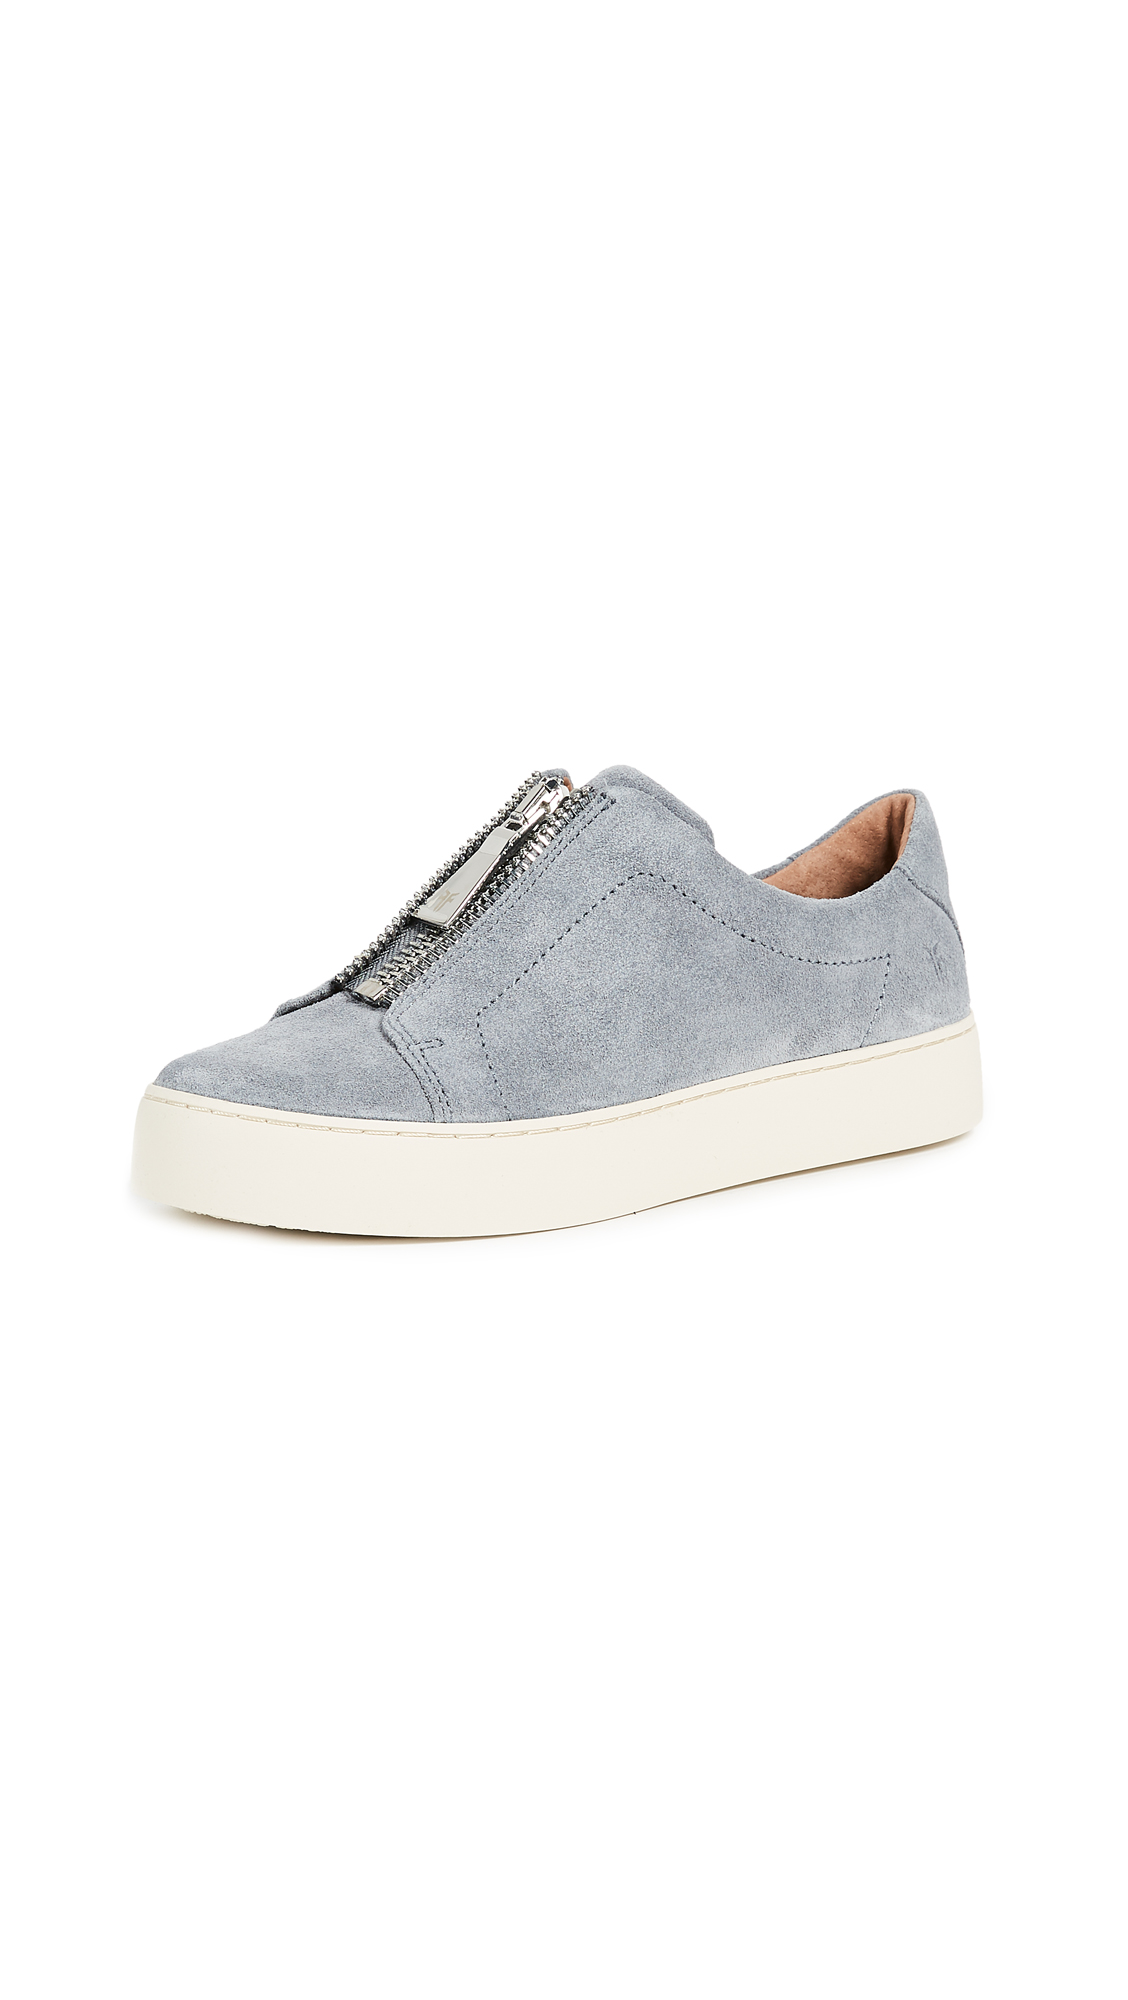 Frye Lena Zip Low Suede Sneakers